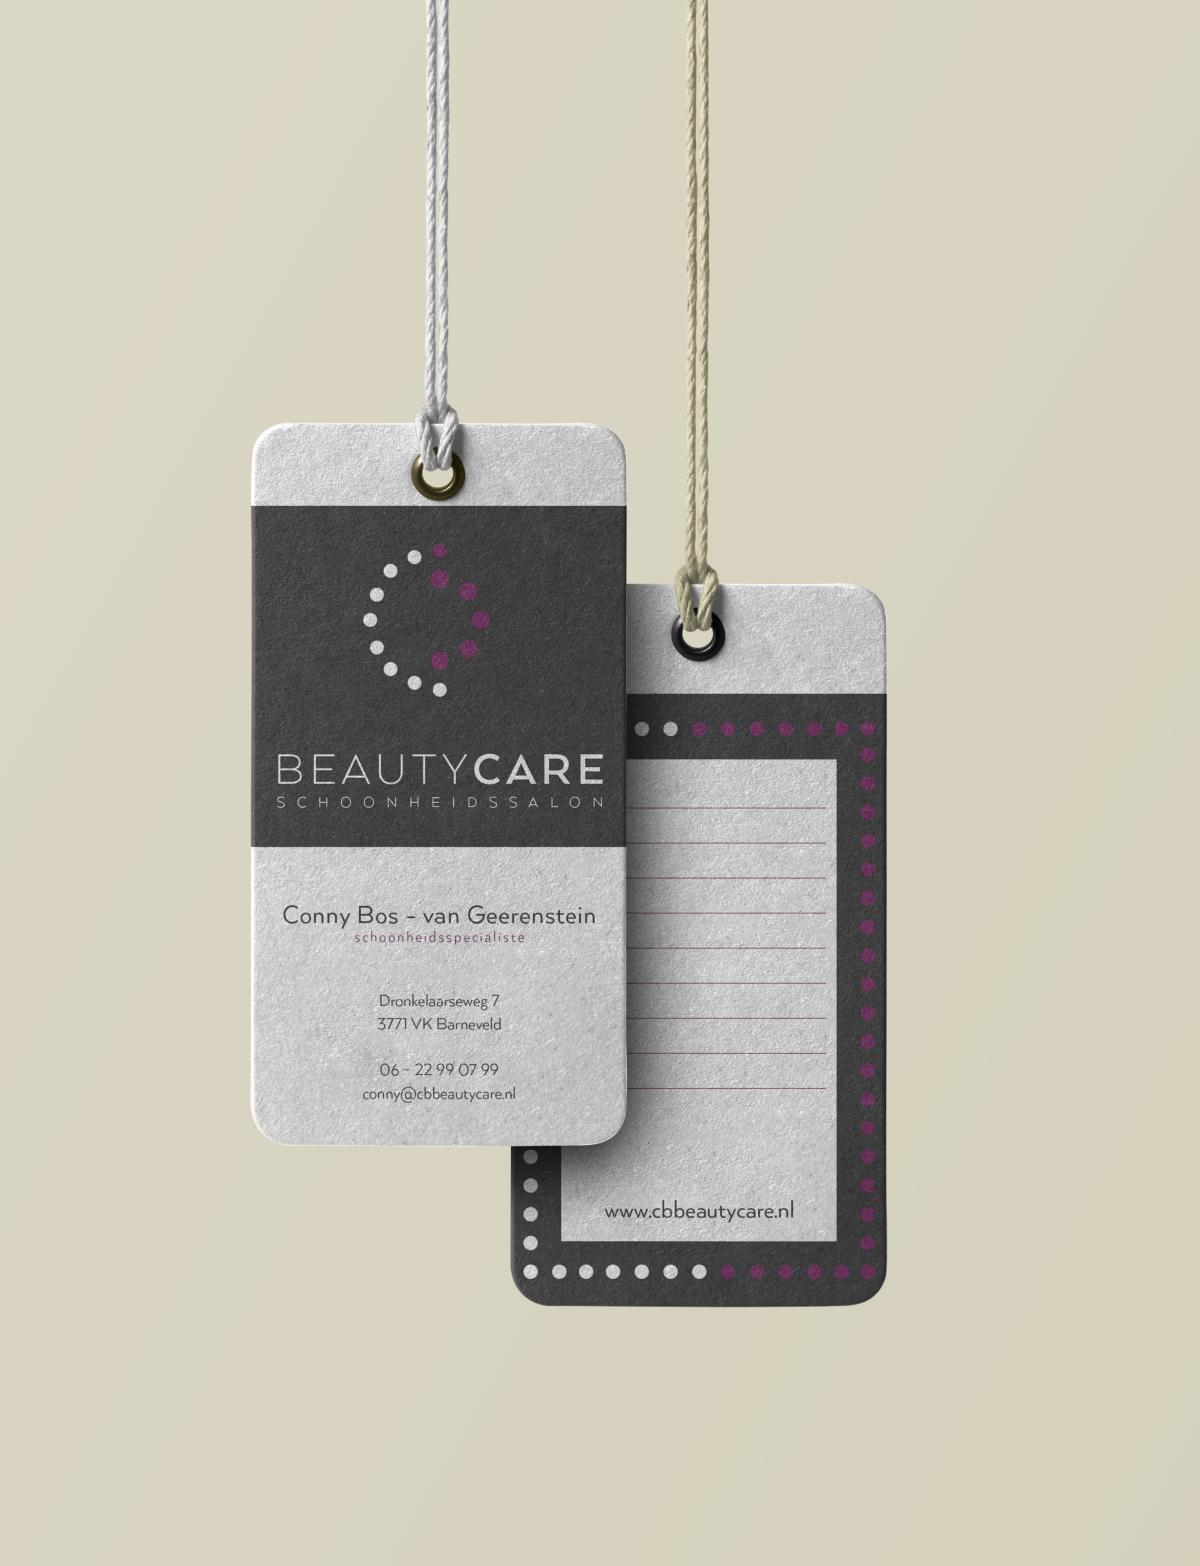 Beauty Care - corporate identity